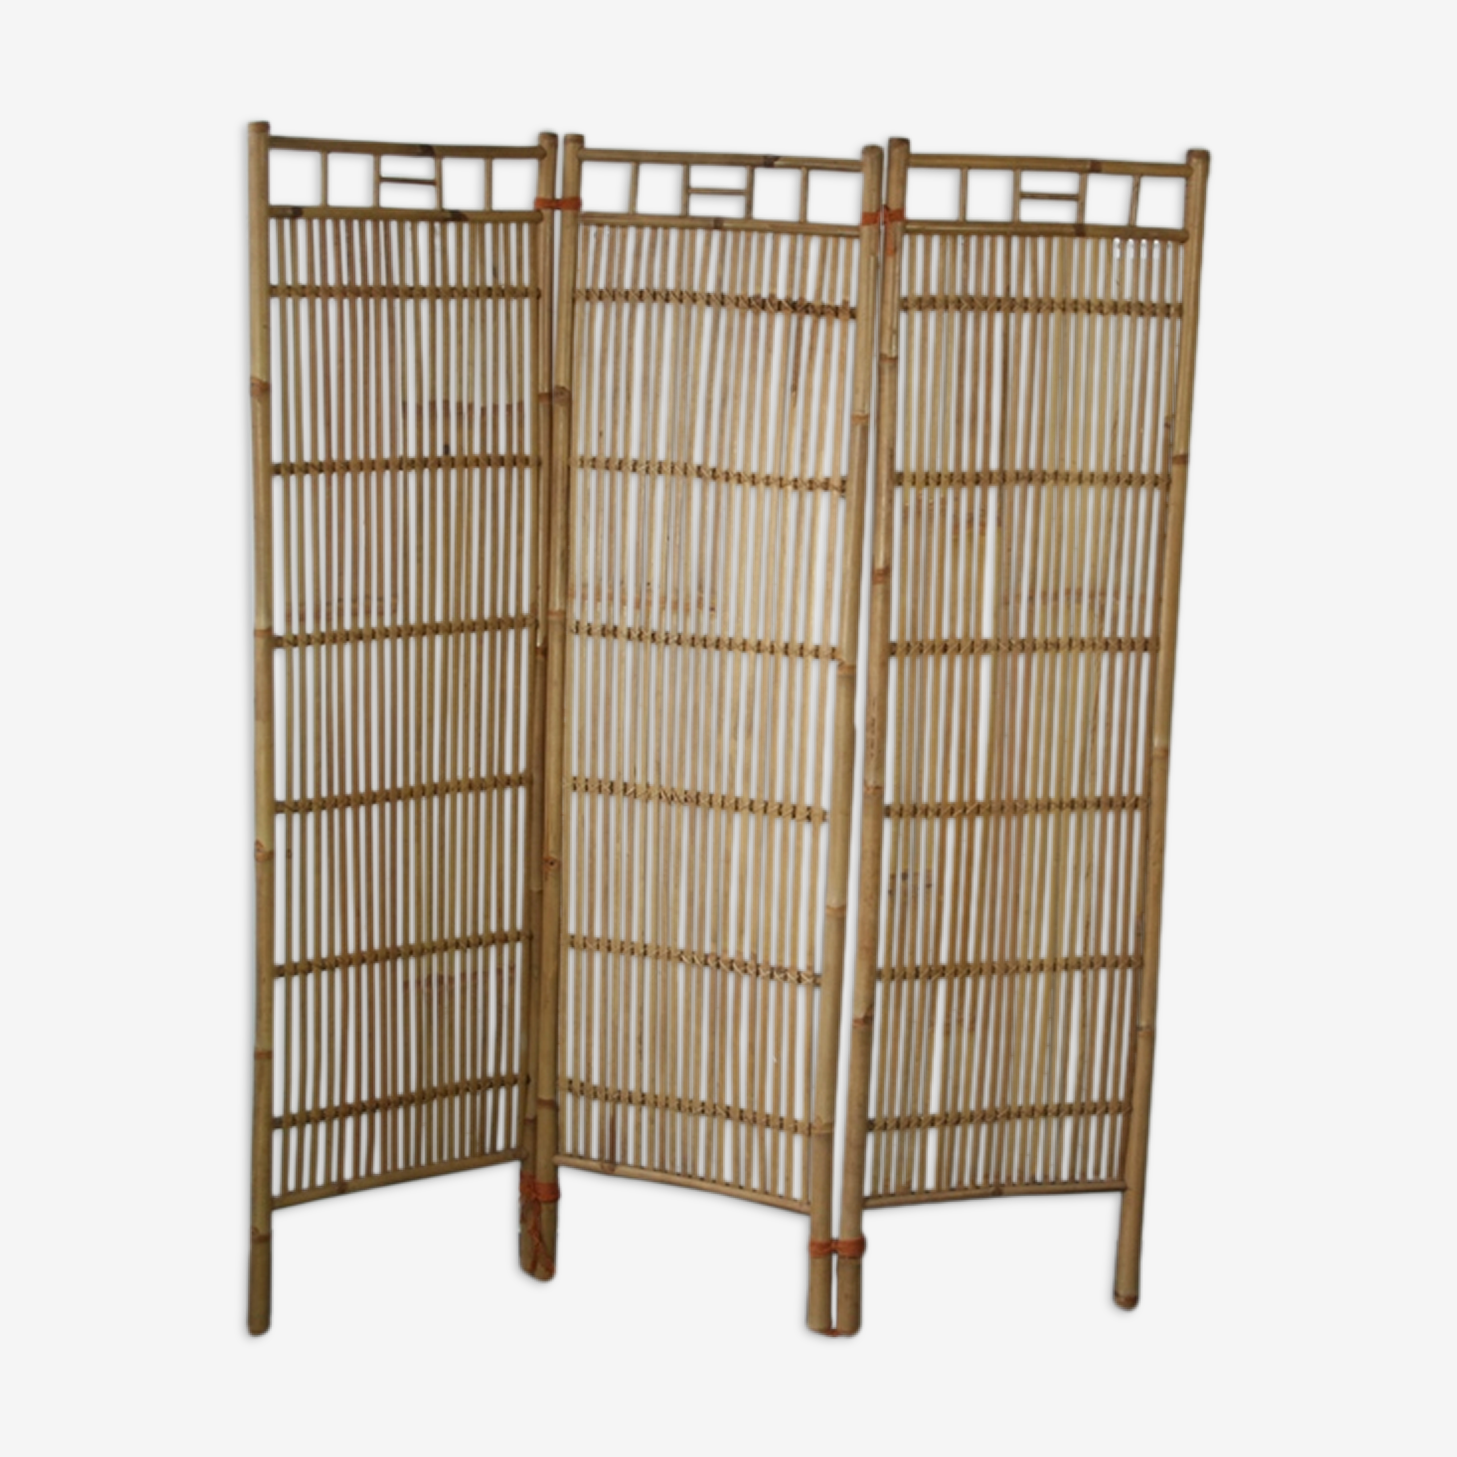 Screen 3 panels bamboo, rattan and wicker 1970 vintage